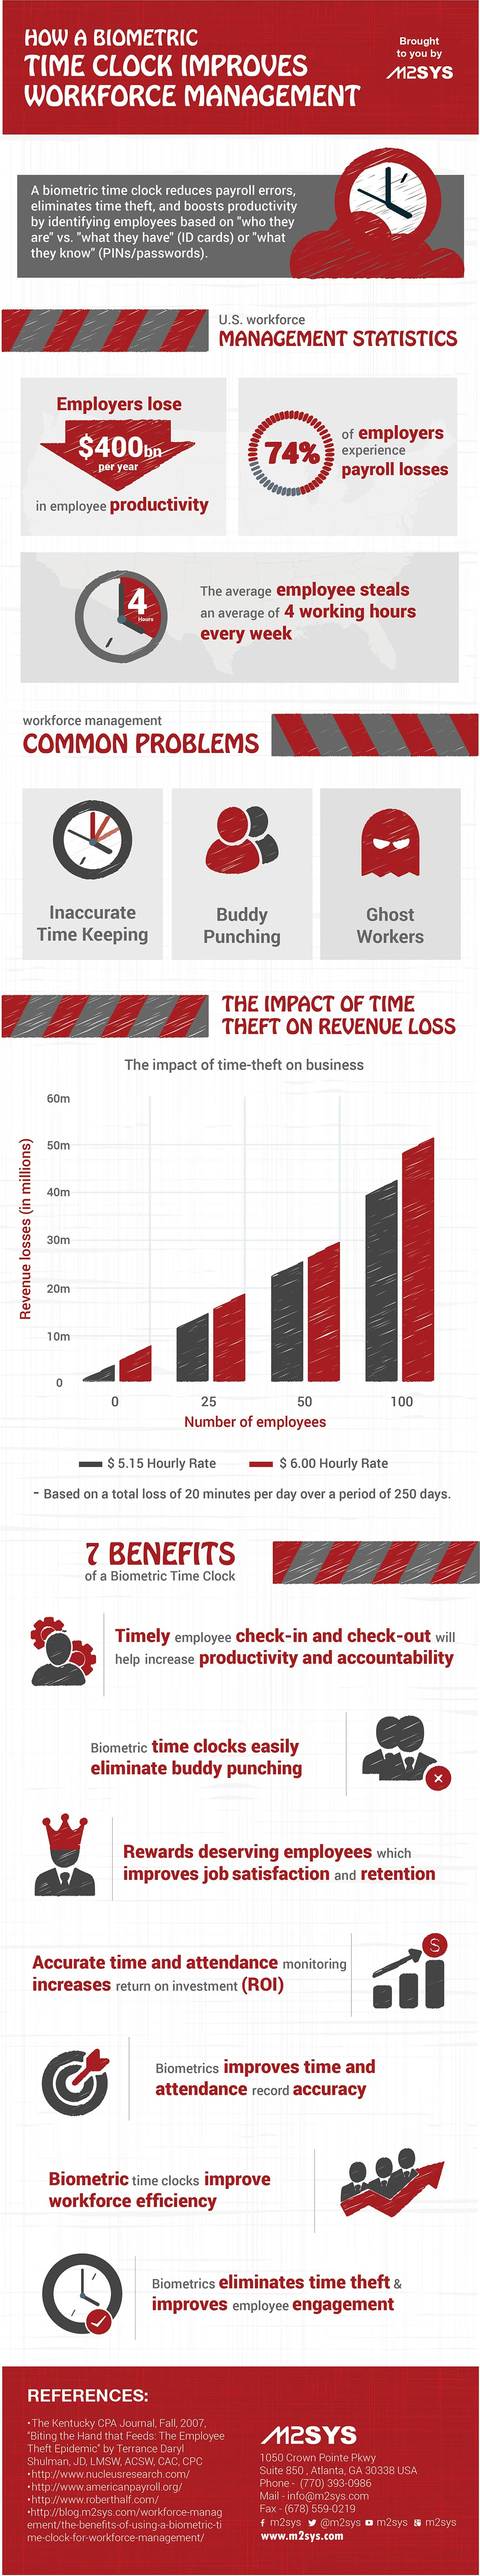 How A Biometric Time Clock Improves Workforce Management